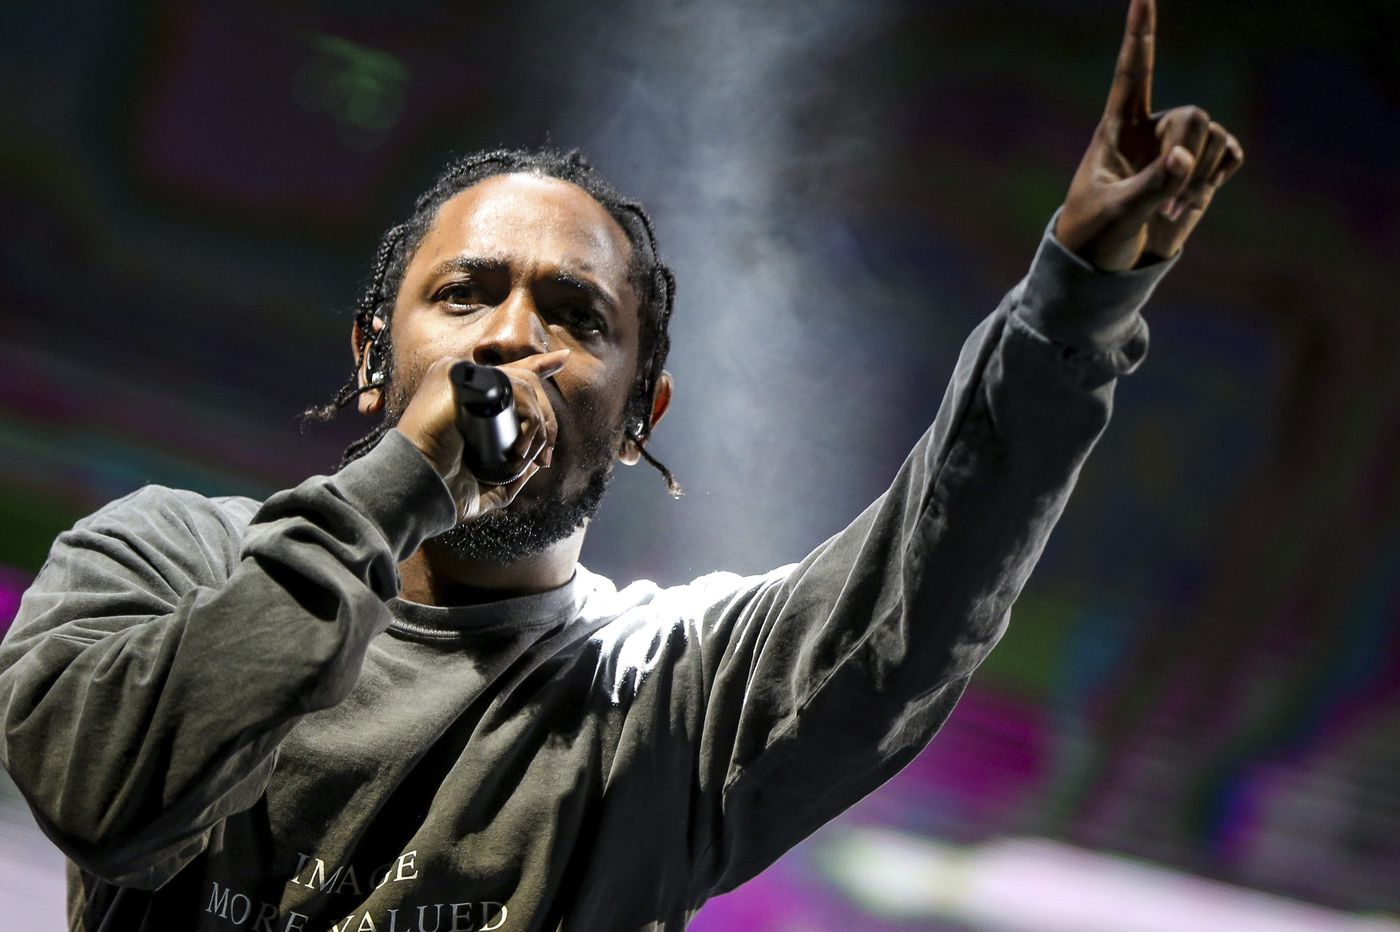 Kendrick Lamar added to Made in America bill